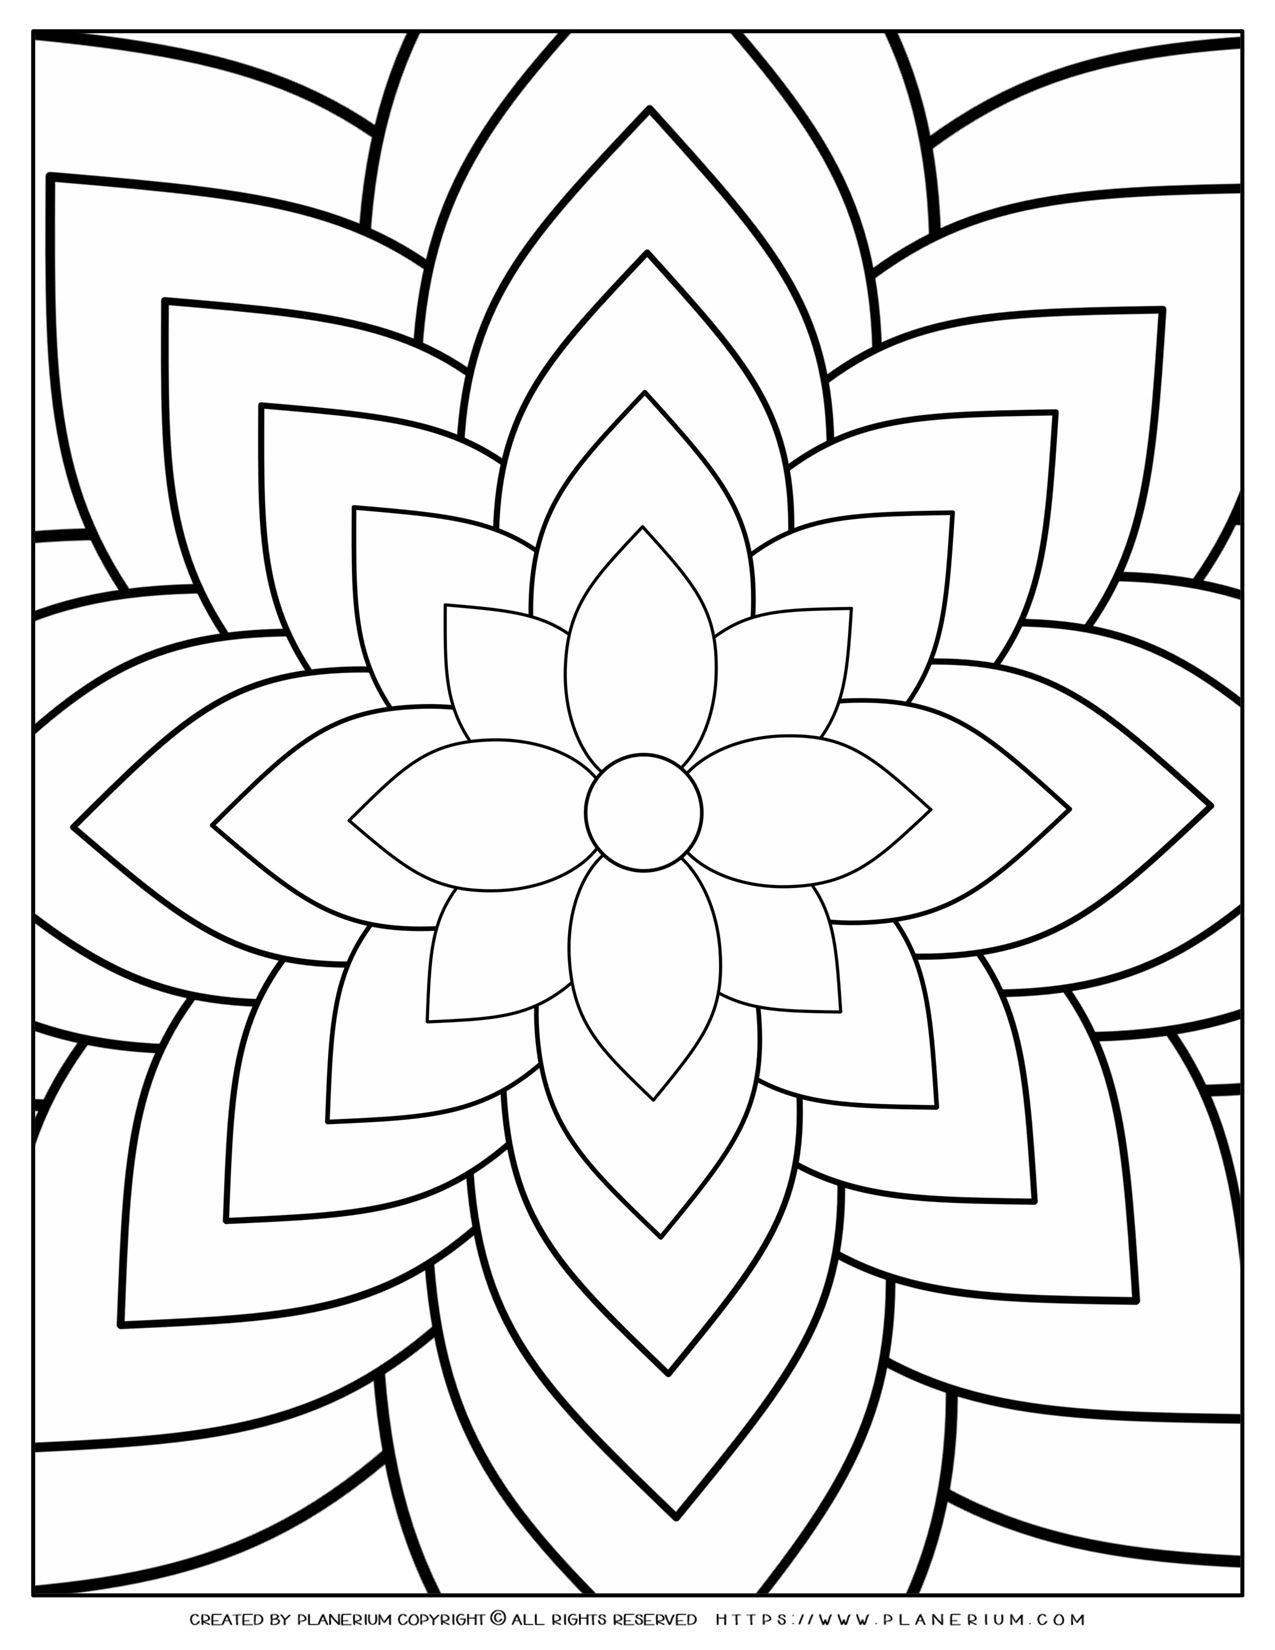 Adult Coloring Page - Flower Riddles | Planerium